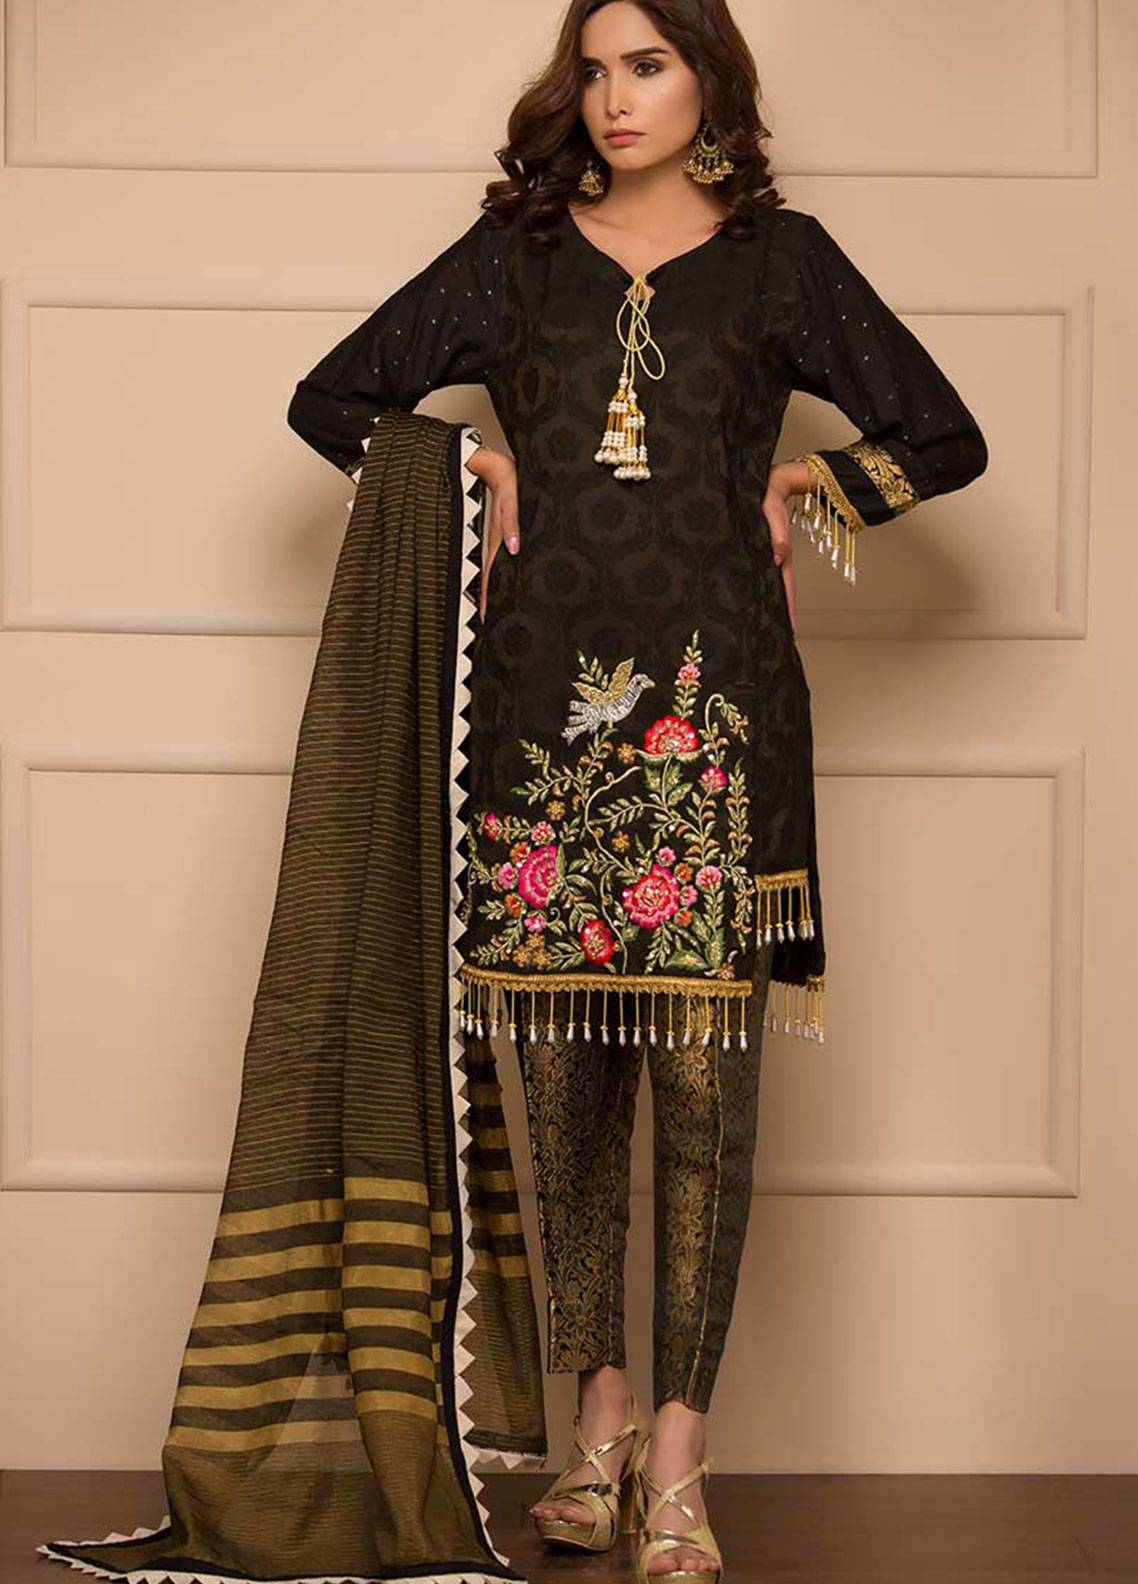 Chic Ophicial Embroidered Missouri Stitched 3 Piece Suit A-symmetrical Black